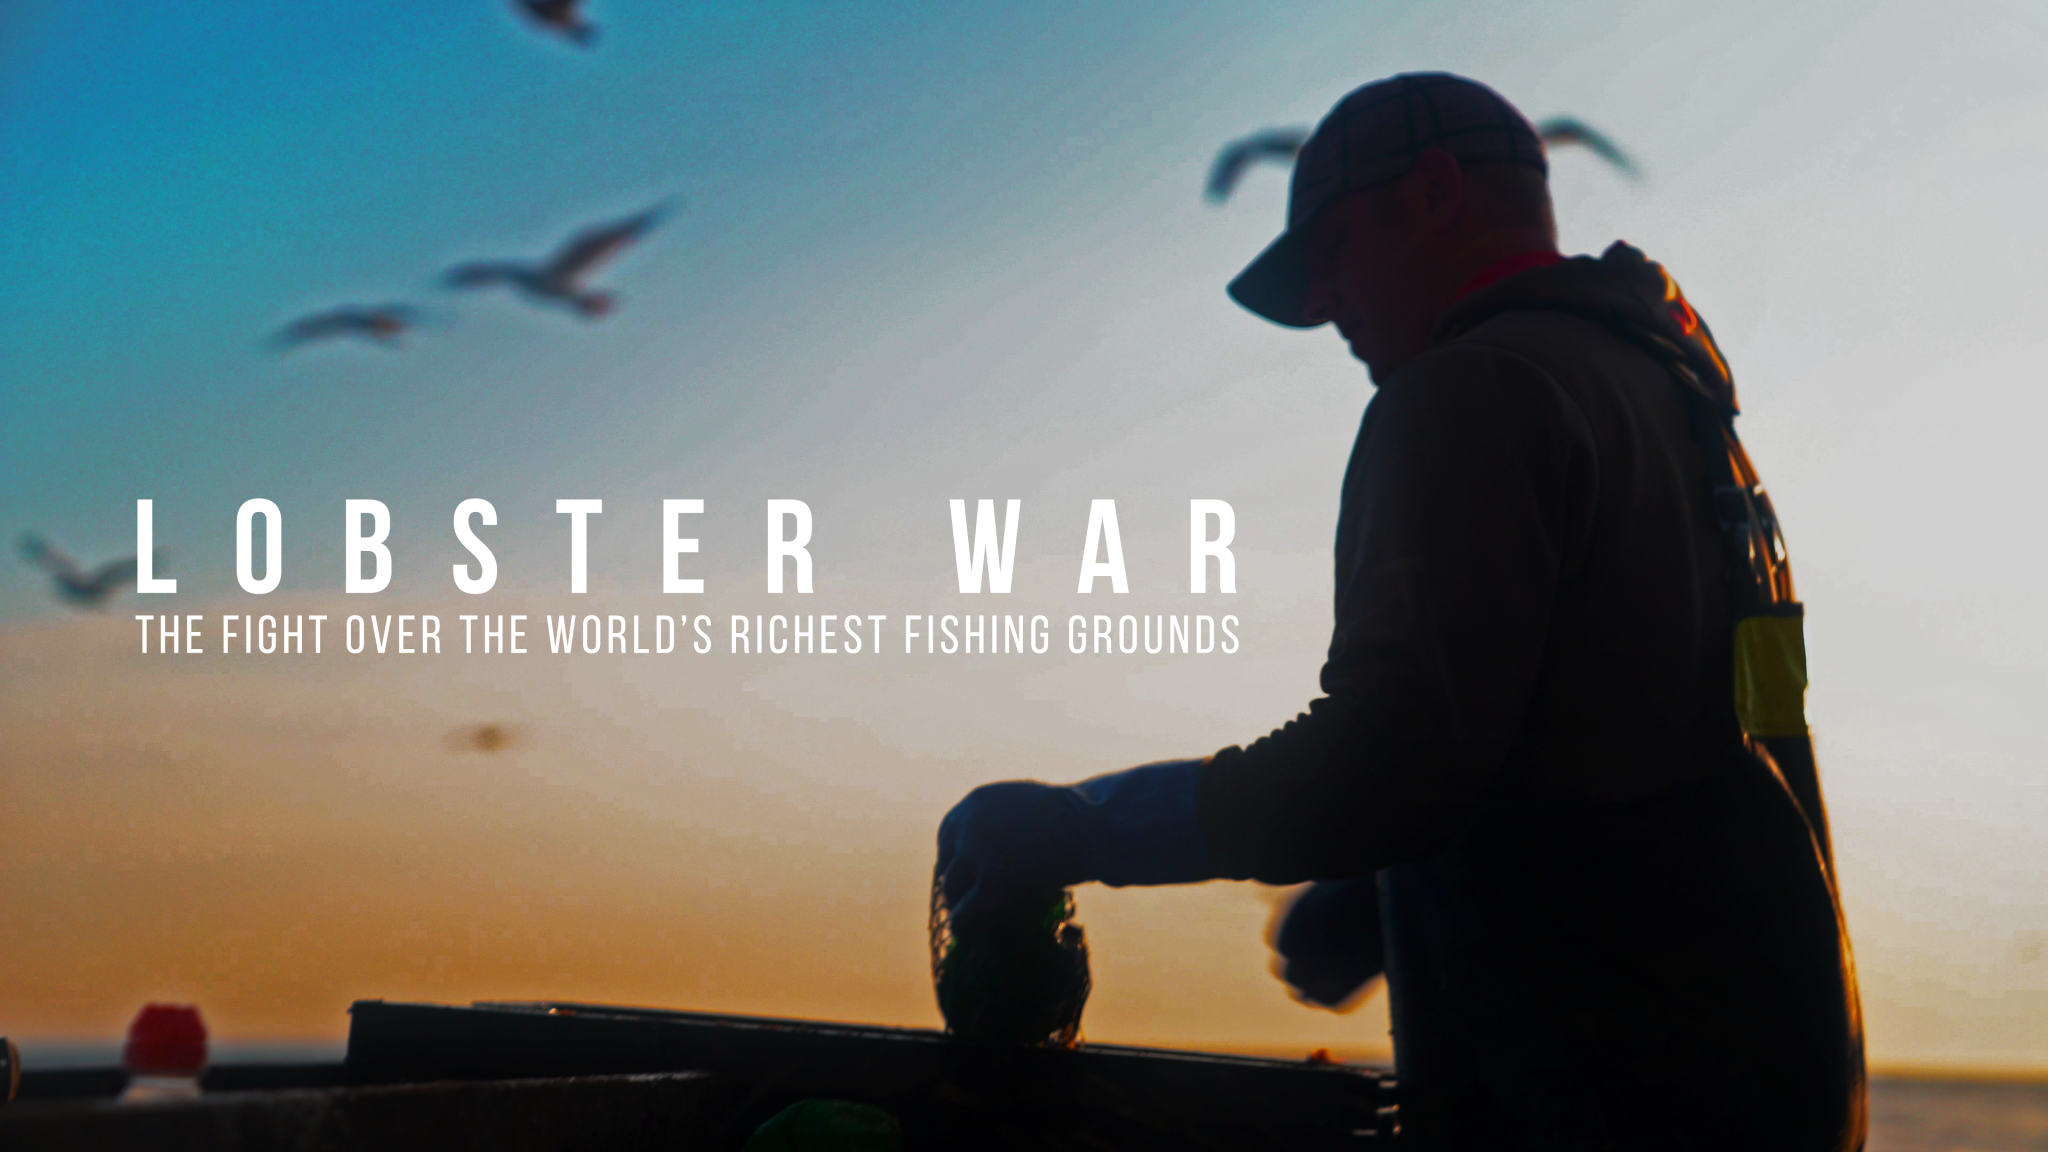 lobster war: the fight over the world's richest fishing grounds header